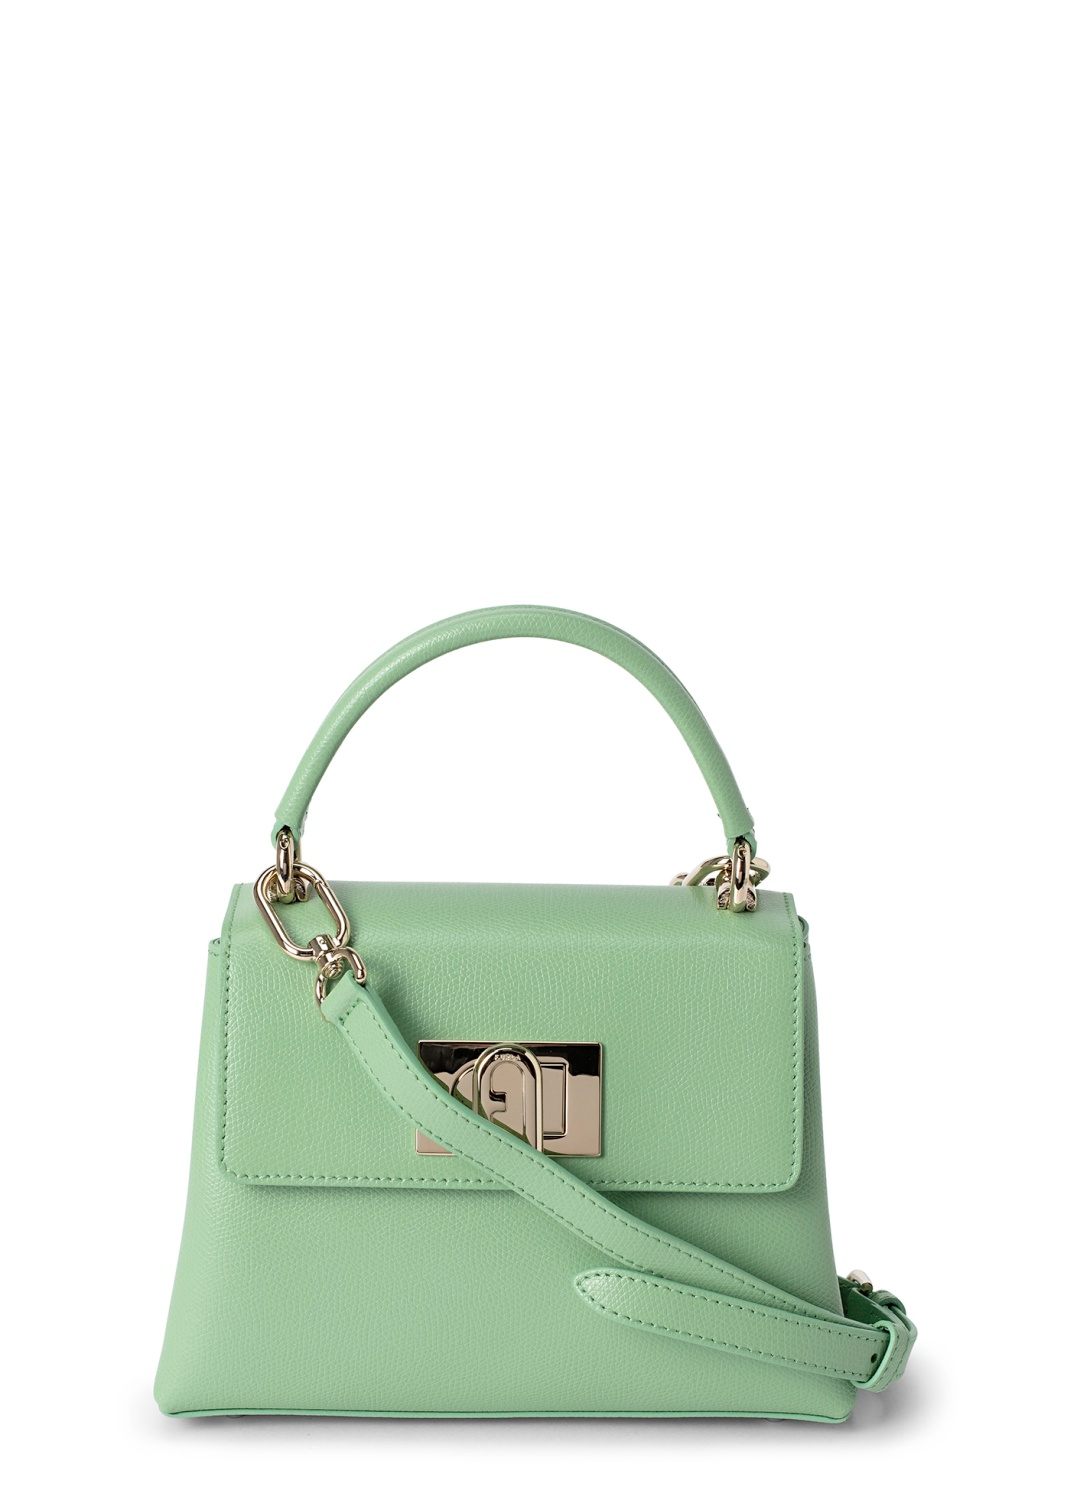 FURLA 1927 MINI TOP HANDLE image number 0